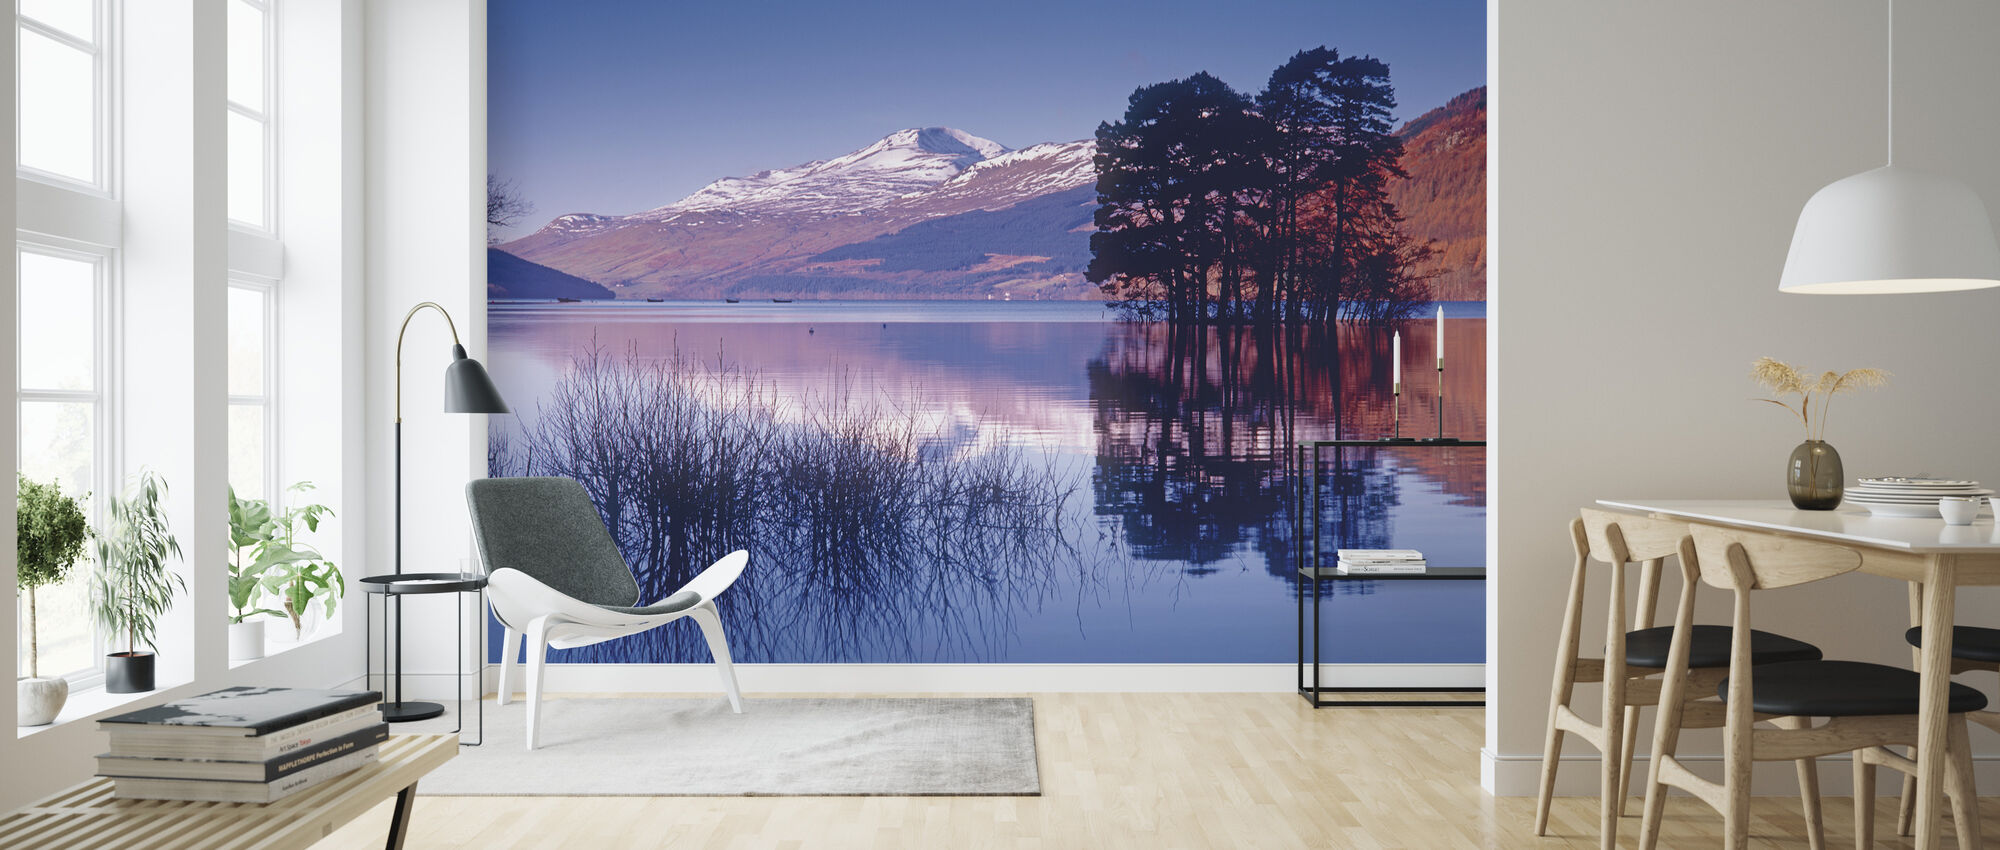 Loch Tay of Kenmore, Scotland - Wallpaper - Living Room